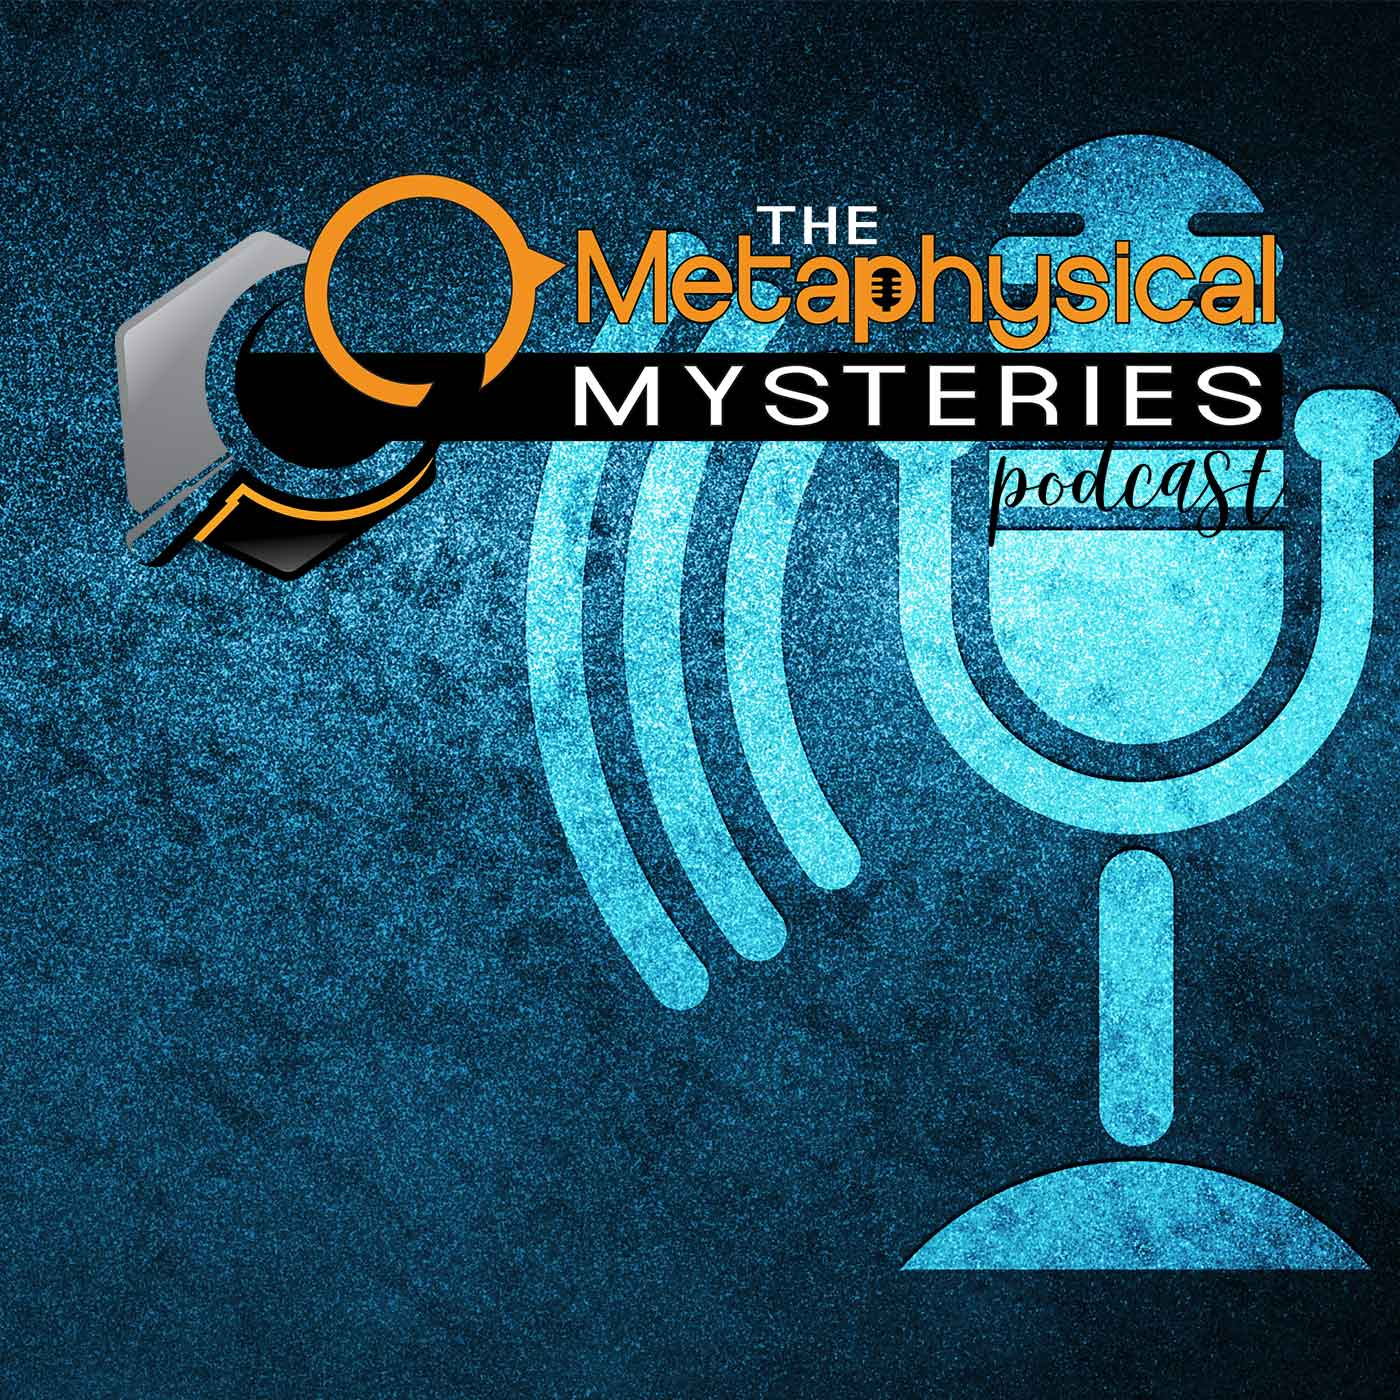 The Metaphysical Mysteries Podcast